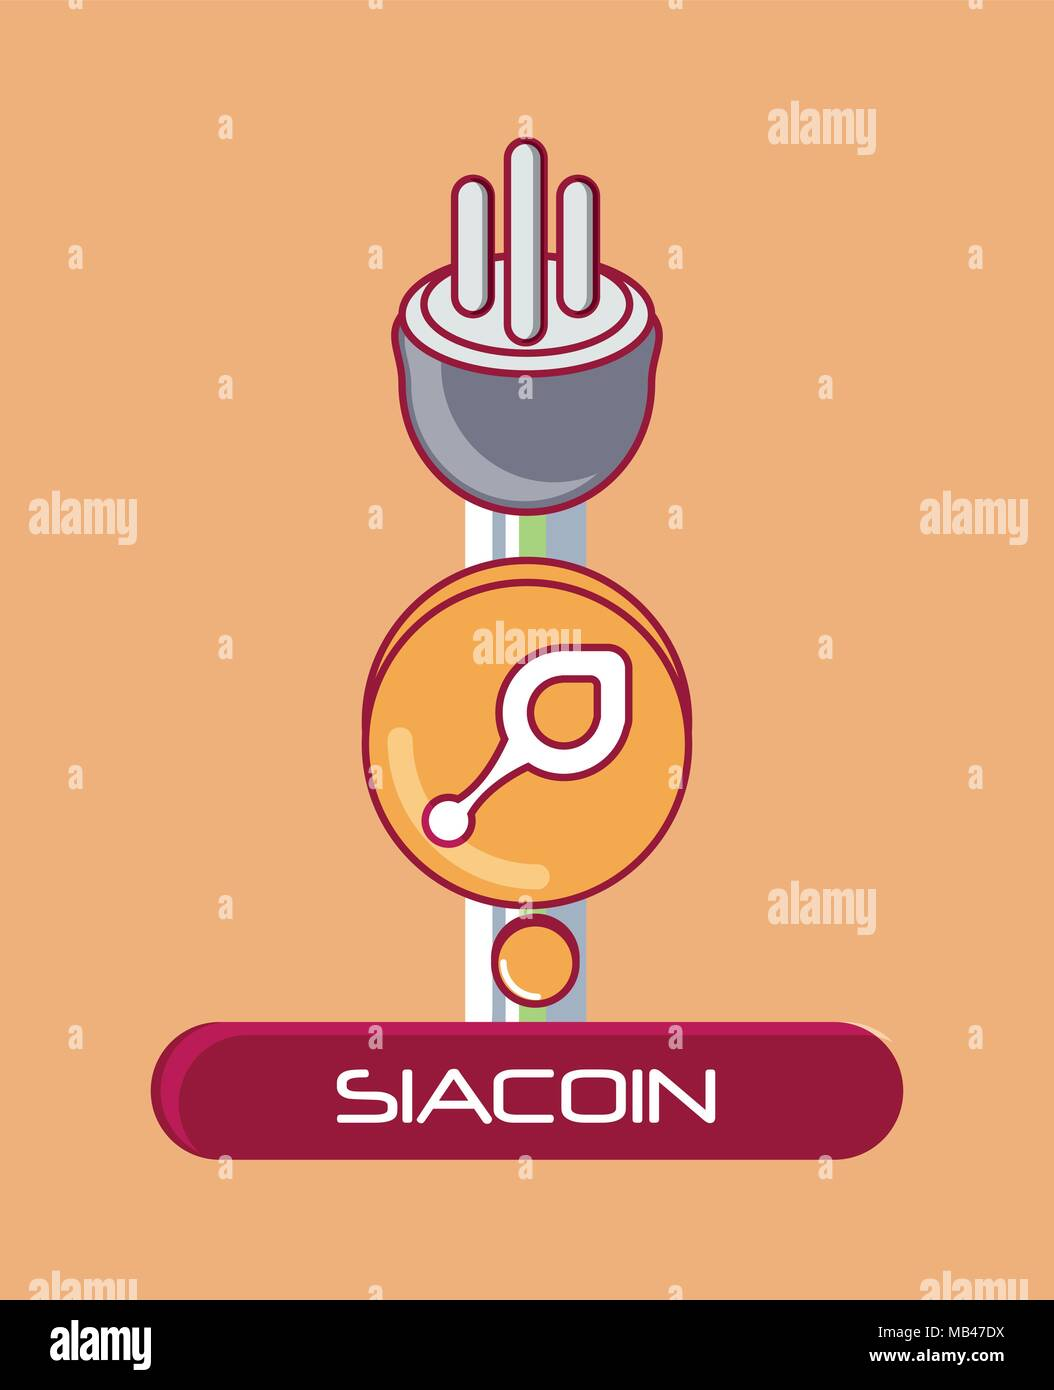 Siacoin coin with plug over ornage background, colorful design. vector illustration - Stock Image